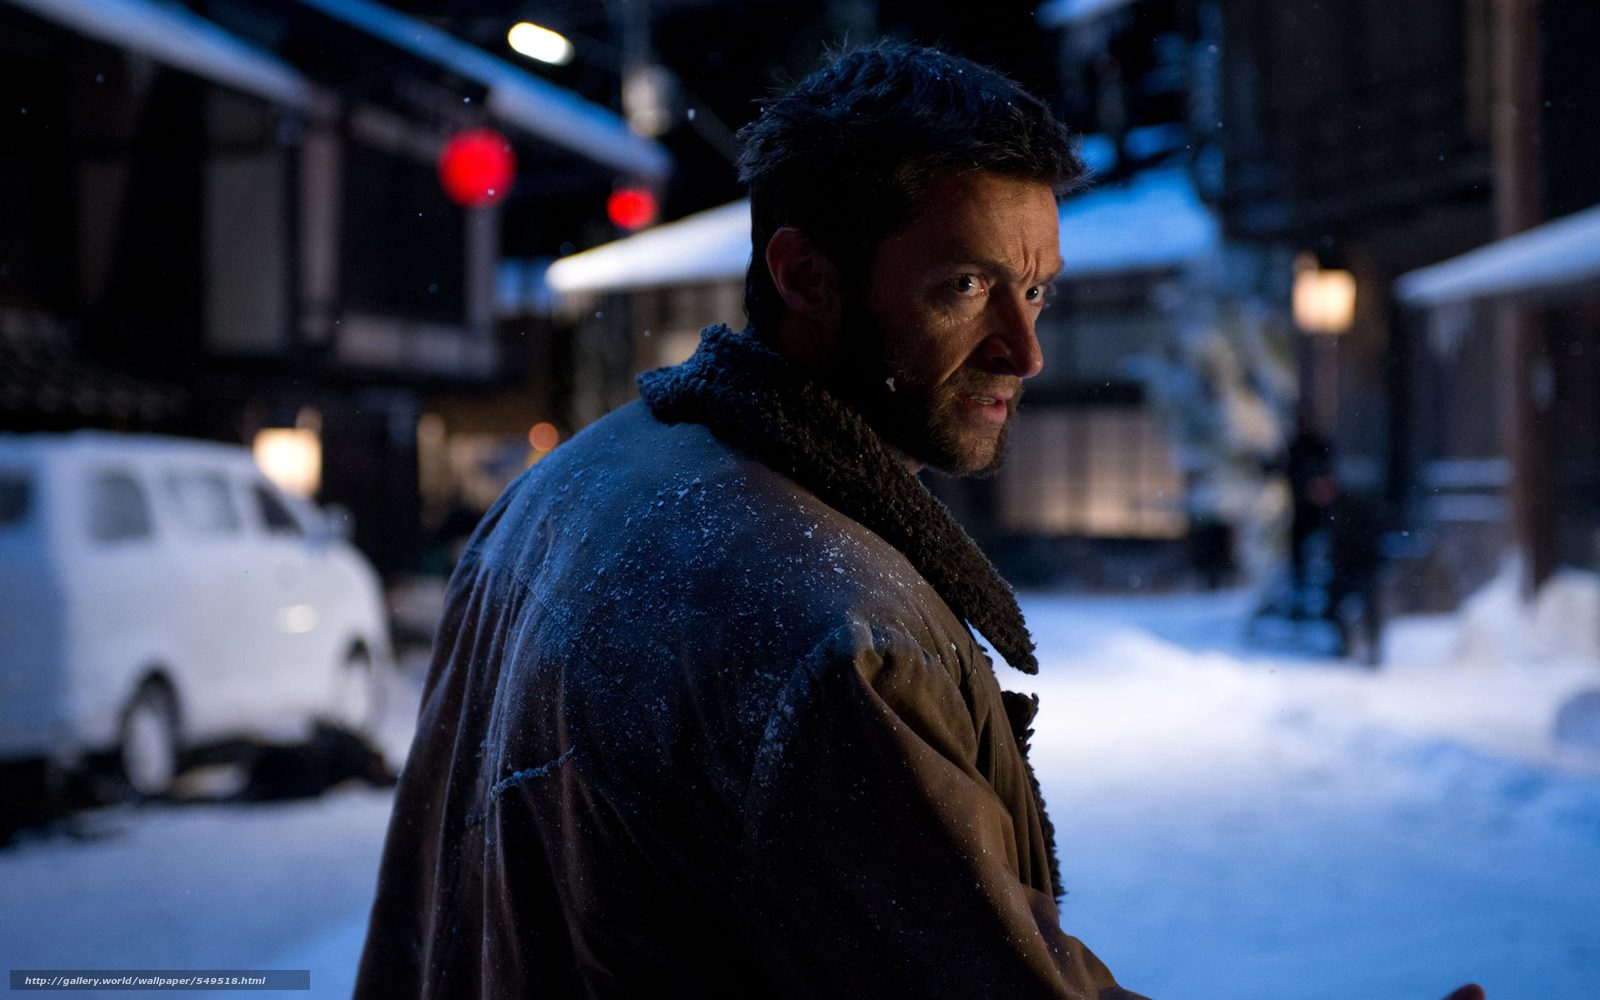 the life and secrets of wolverine in logan an x men movie by james mangold